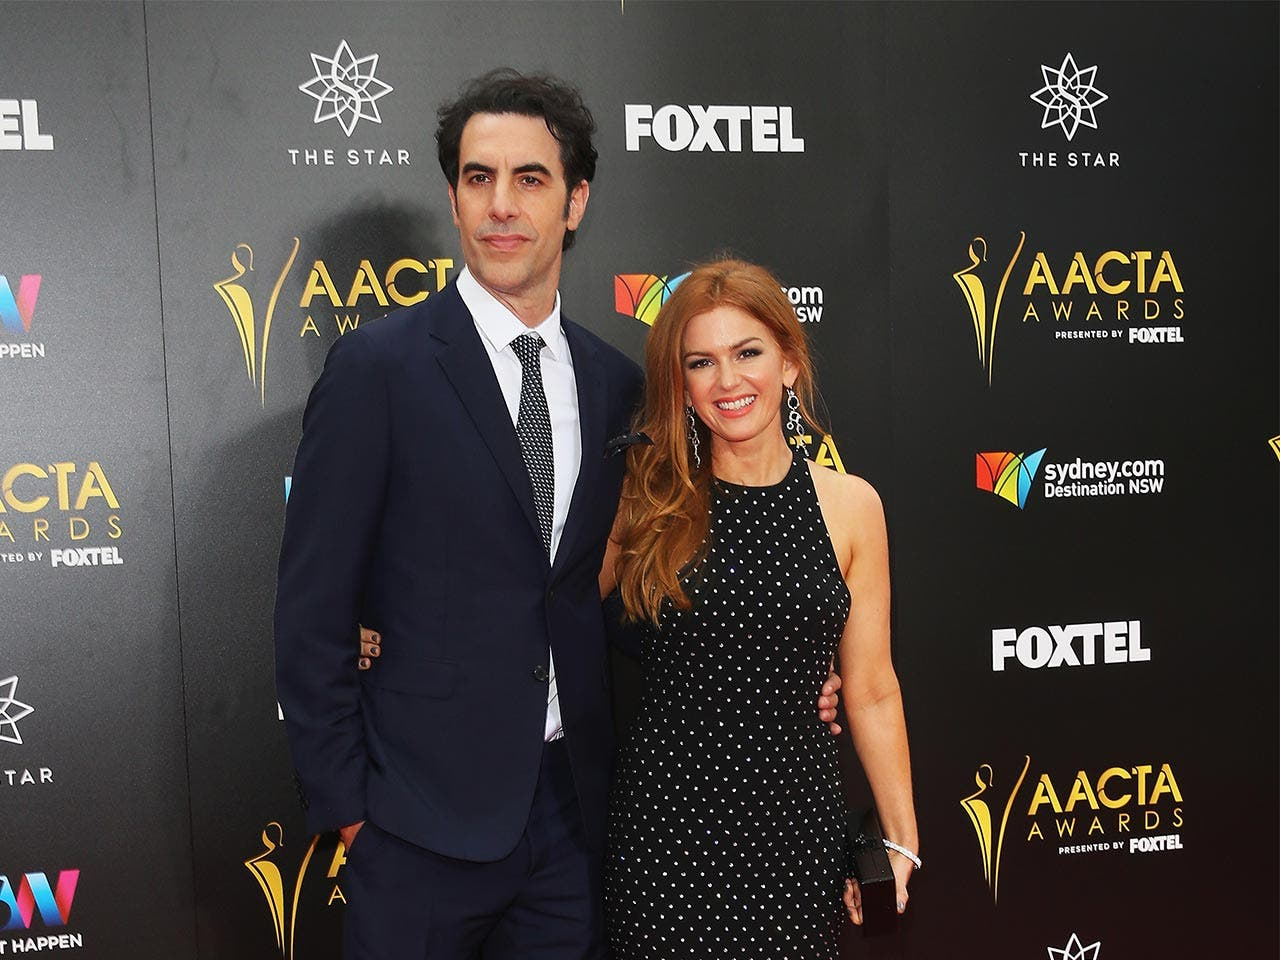 Sacha Baron Cohen and Isla Fisher | Don Arnold/Getty Images